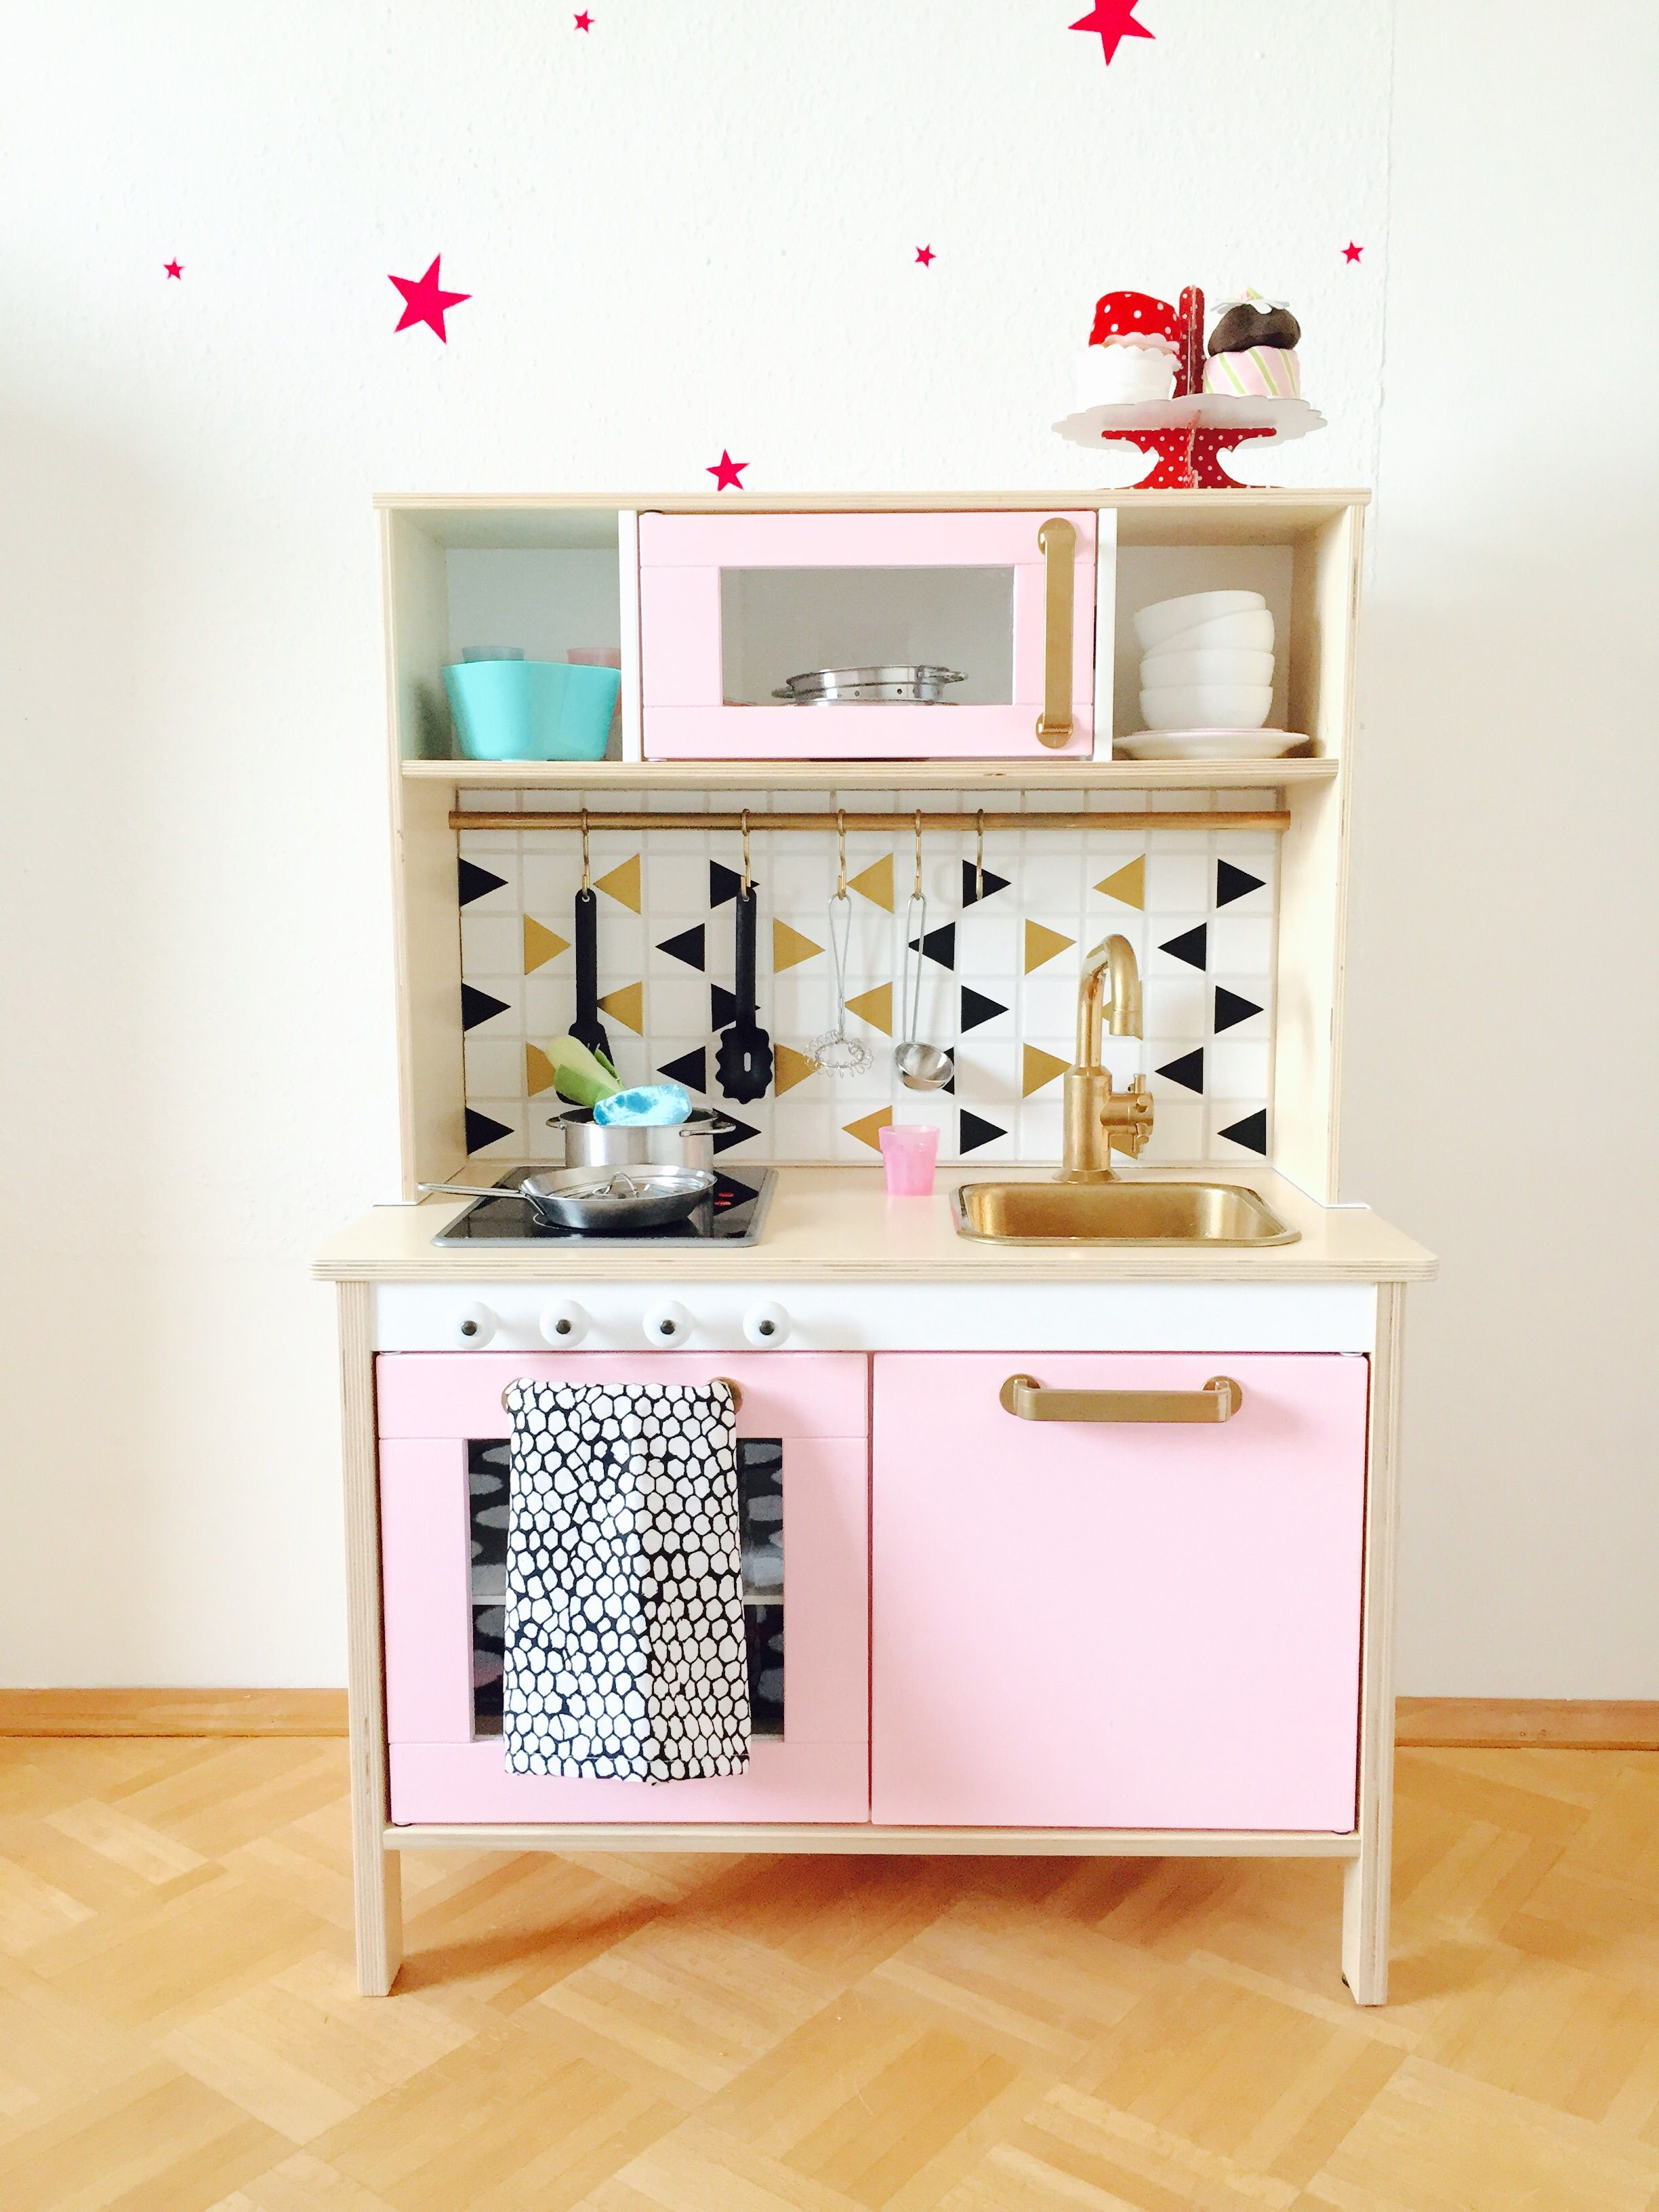 Ikea Küche Duktig Pimpen Pimp Your Duktig Best Ikea Hacks Ikea Kids Kitchen Ikea Kids